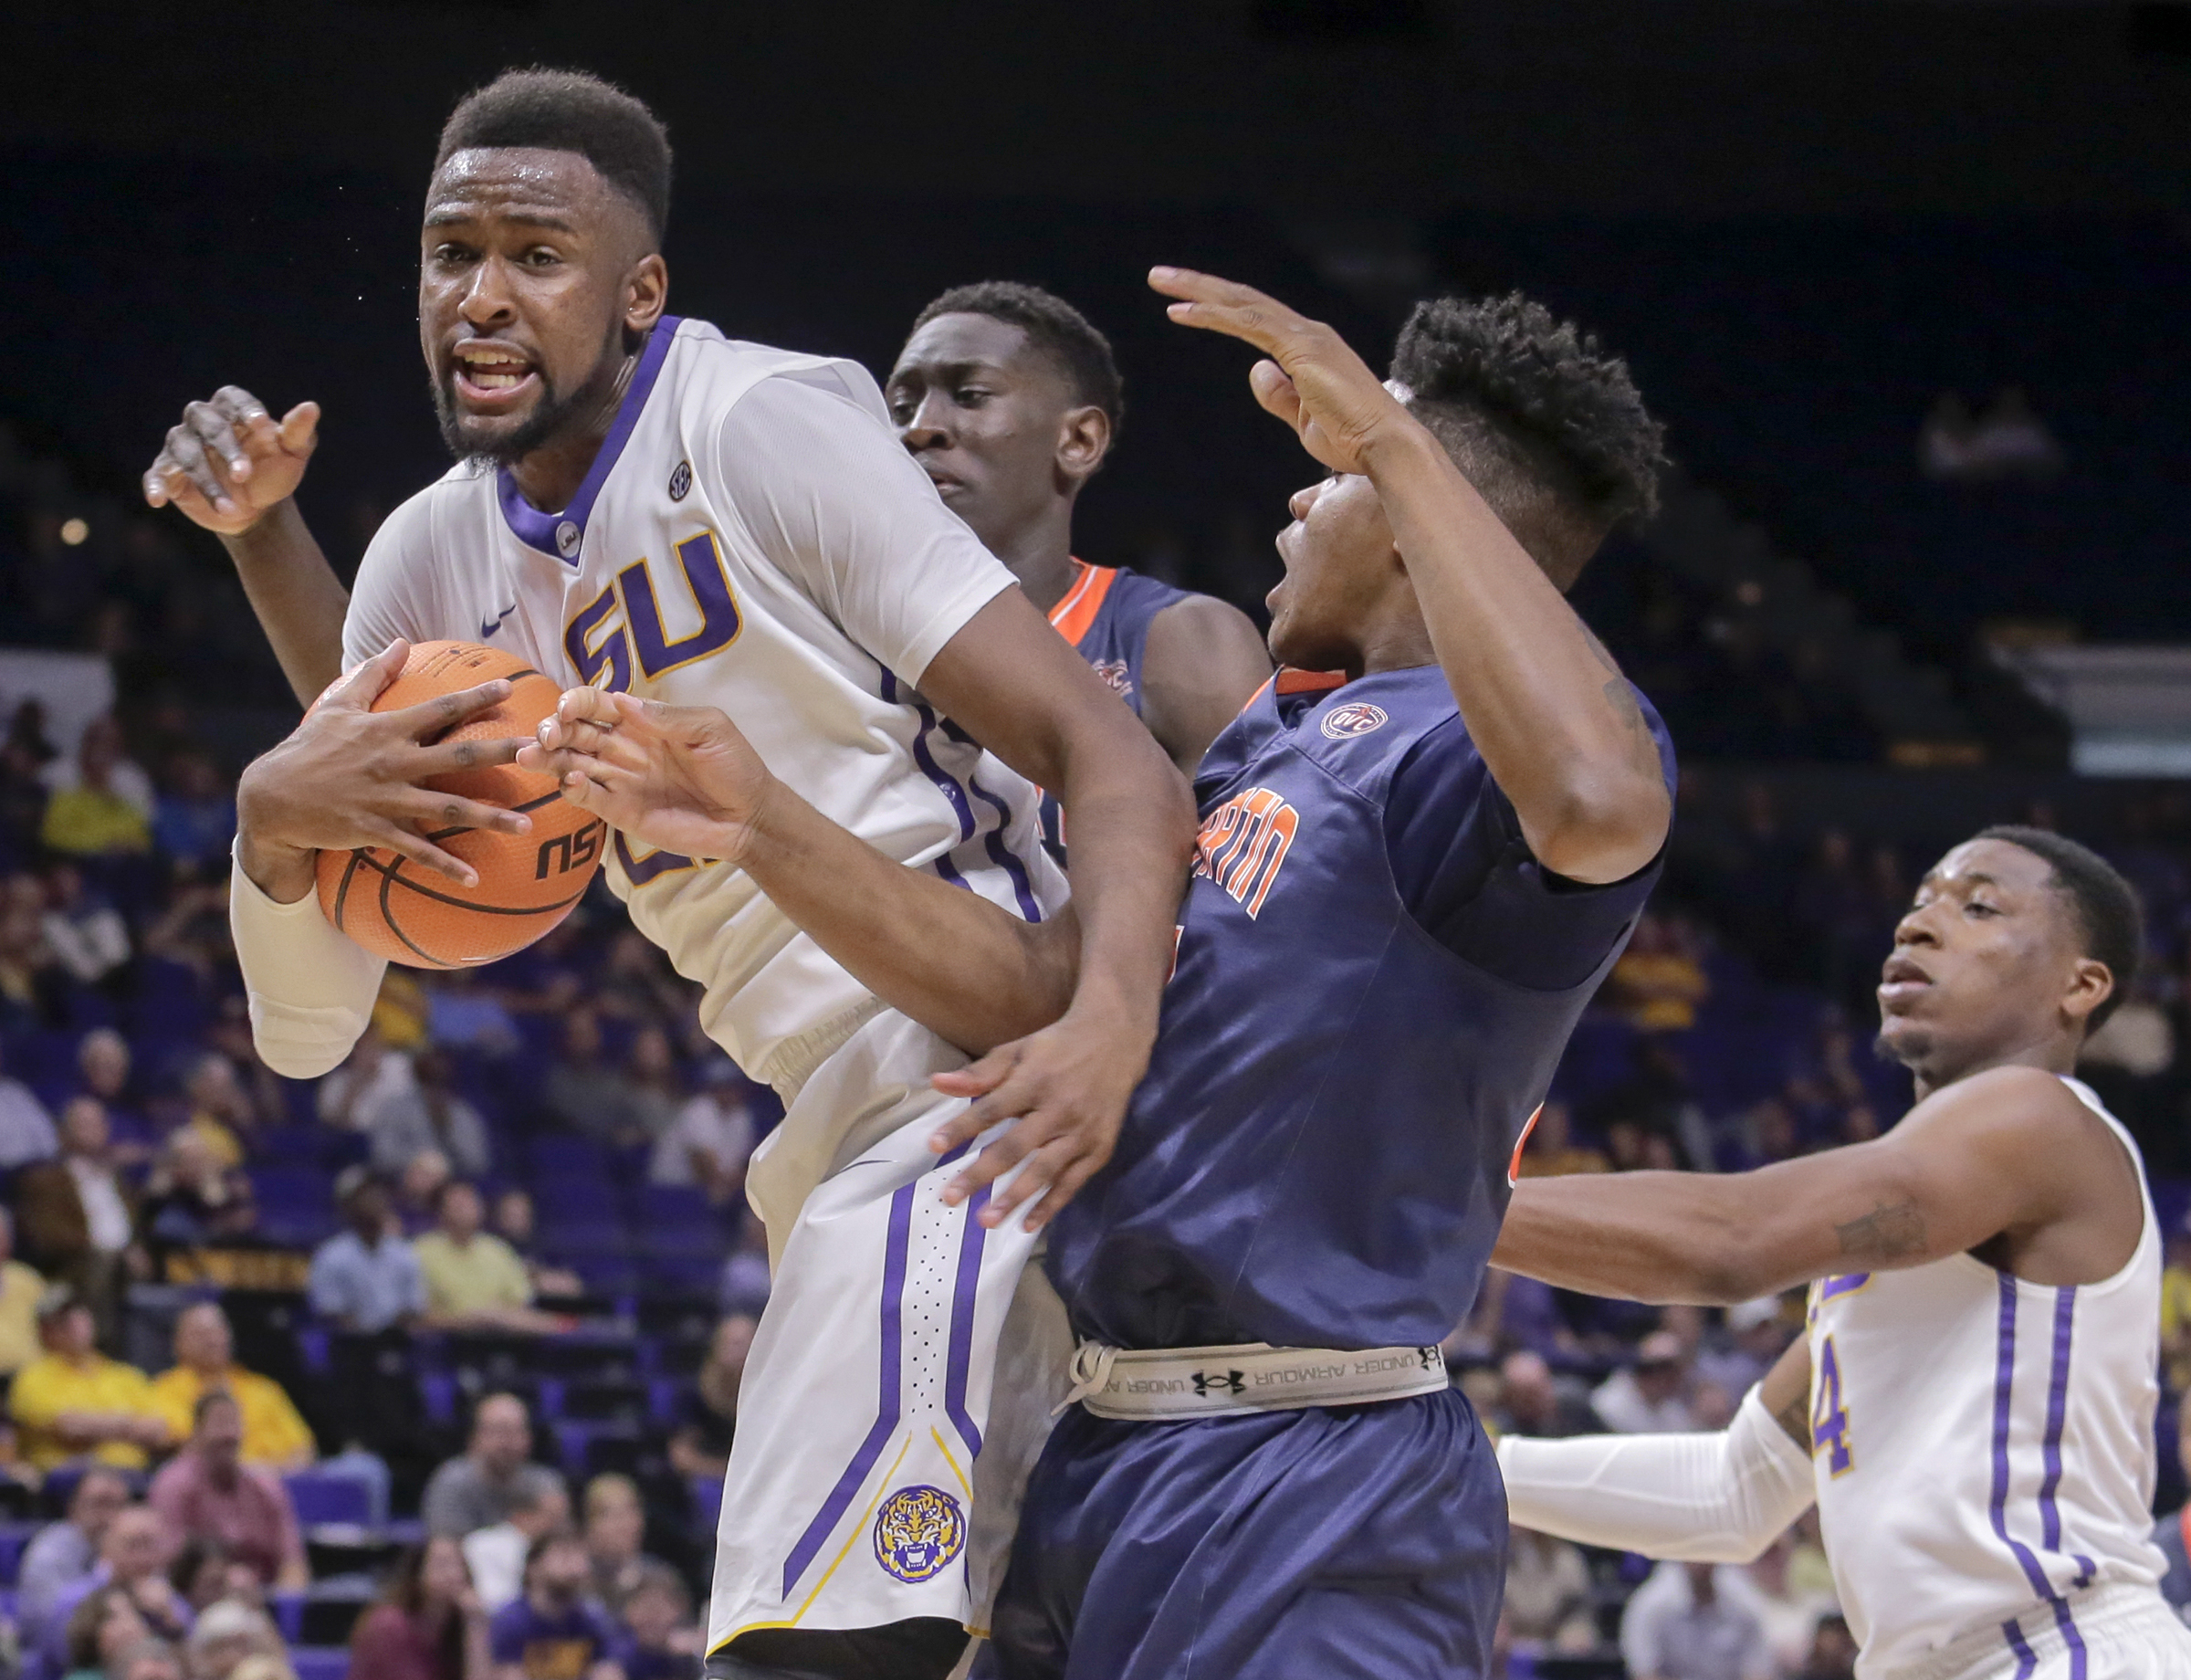 LSU Tigers forward Aaron Epps (21) comes down with the rebound during second half action against the Tennessee-Martin Skyhawks. The Northern Arizona Suns drafted Epps with the sixth pick in the NBA G League Draft. (Brett Duke, NOLA.com | The Times-Picayune)